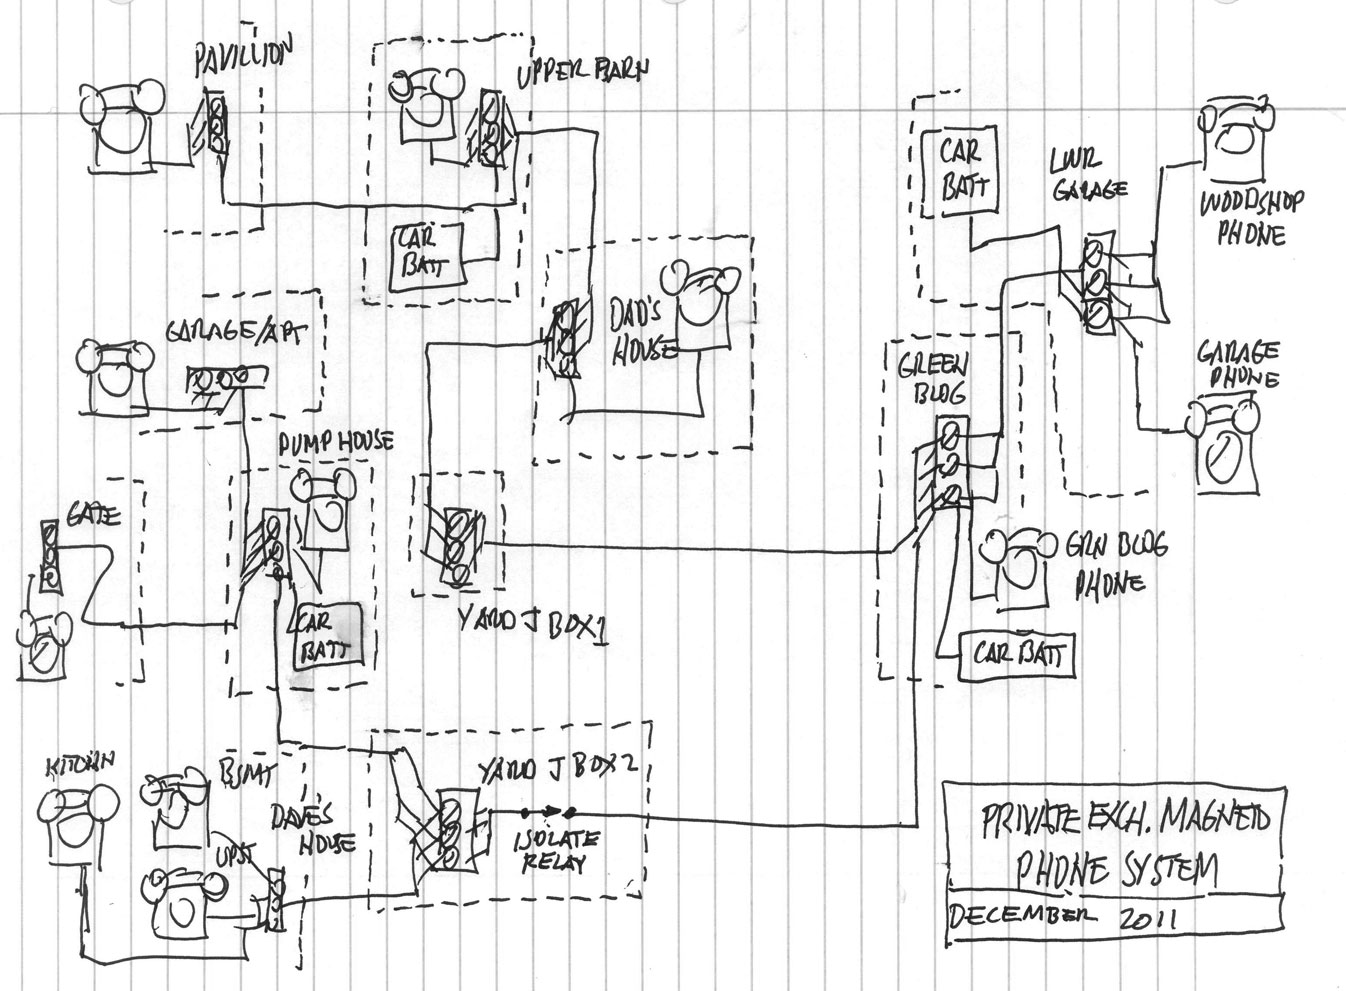 phonesysdiag leich phone Residential Telephone Wiring Diagram at gsmx.co